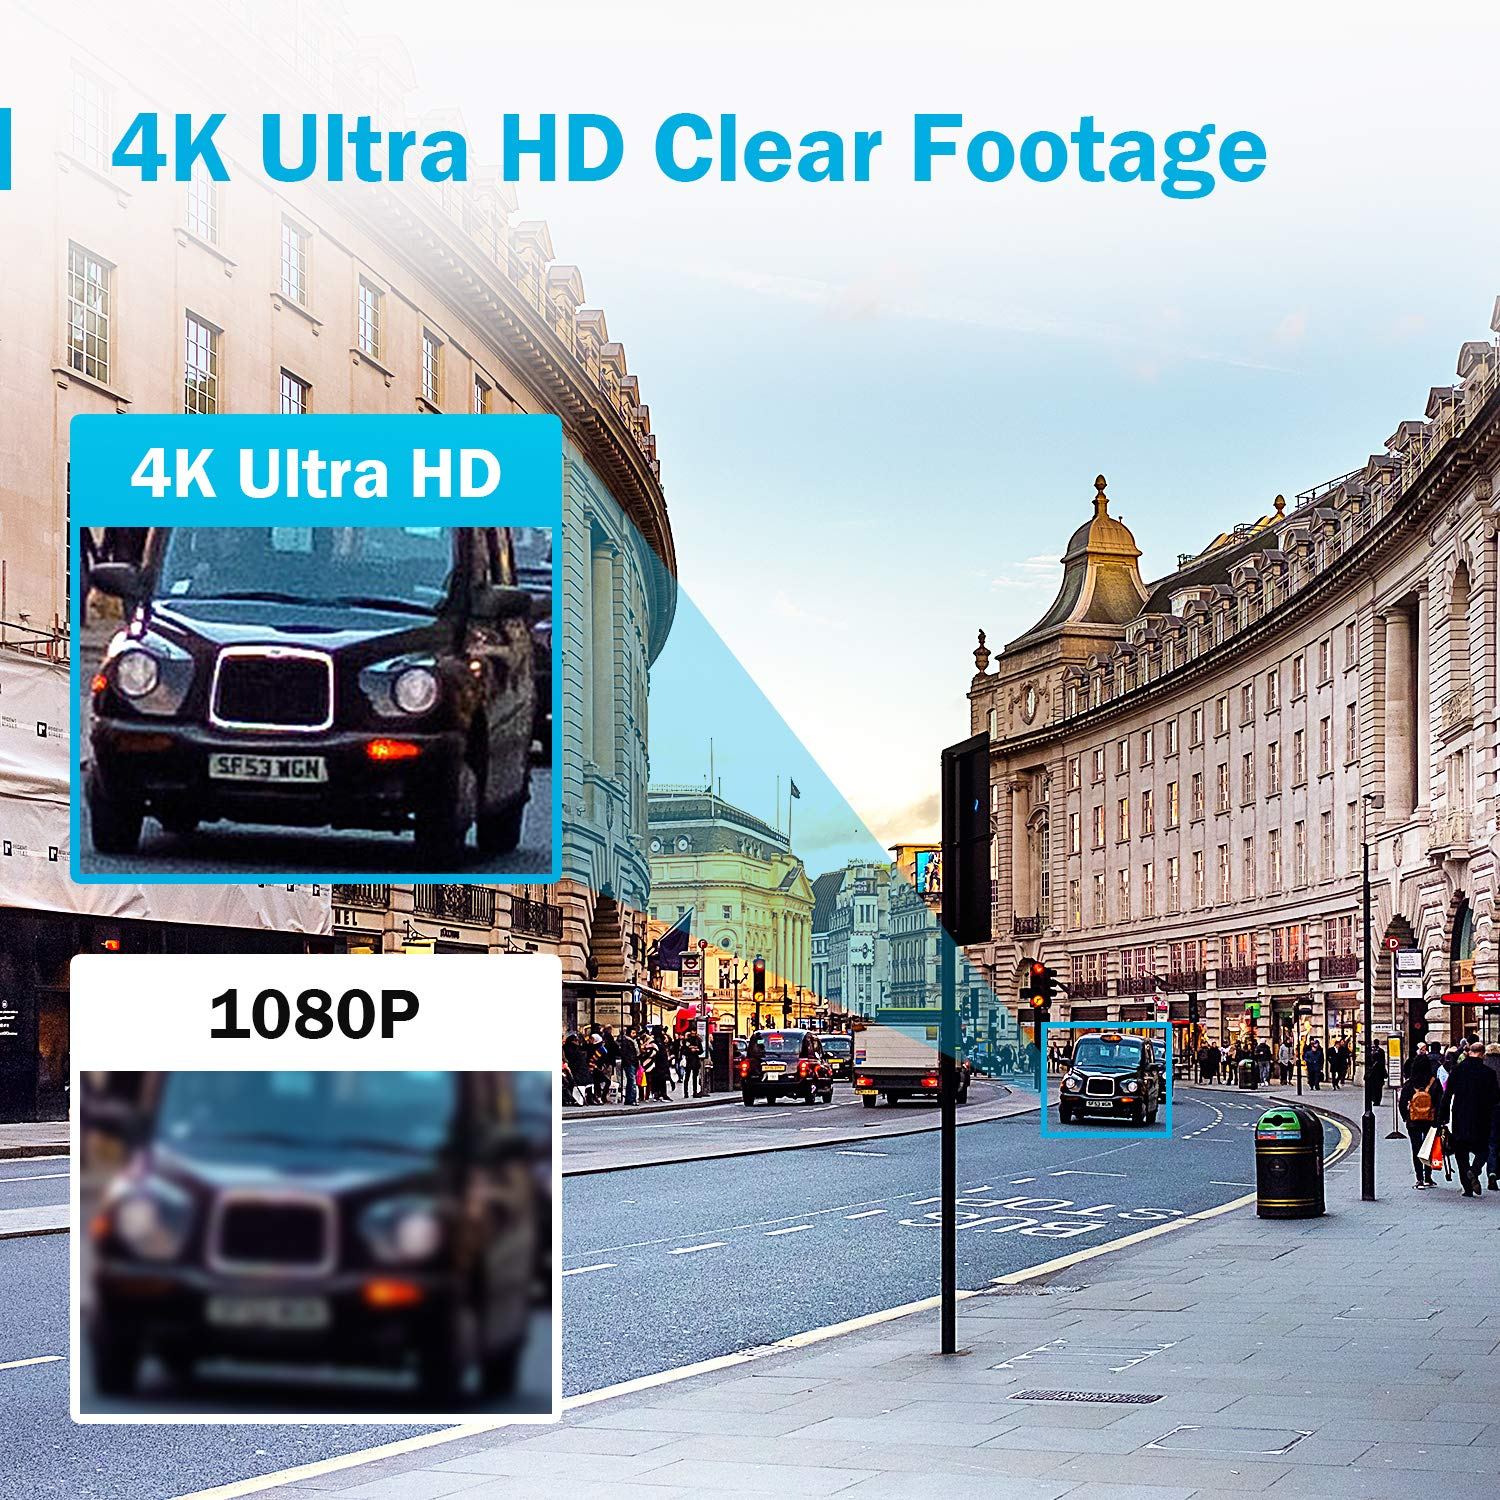 Bullet Cameras ANNKE 8 Channel Ultra HD 4K Home Security System with 4X 8MP IP67 Weatherproof Expandable Surveillance System 3840x2160 H.265 DVR Recorder with 2TB Hard Drive Storage